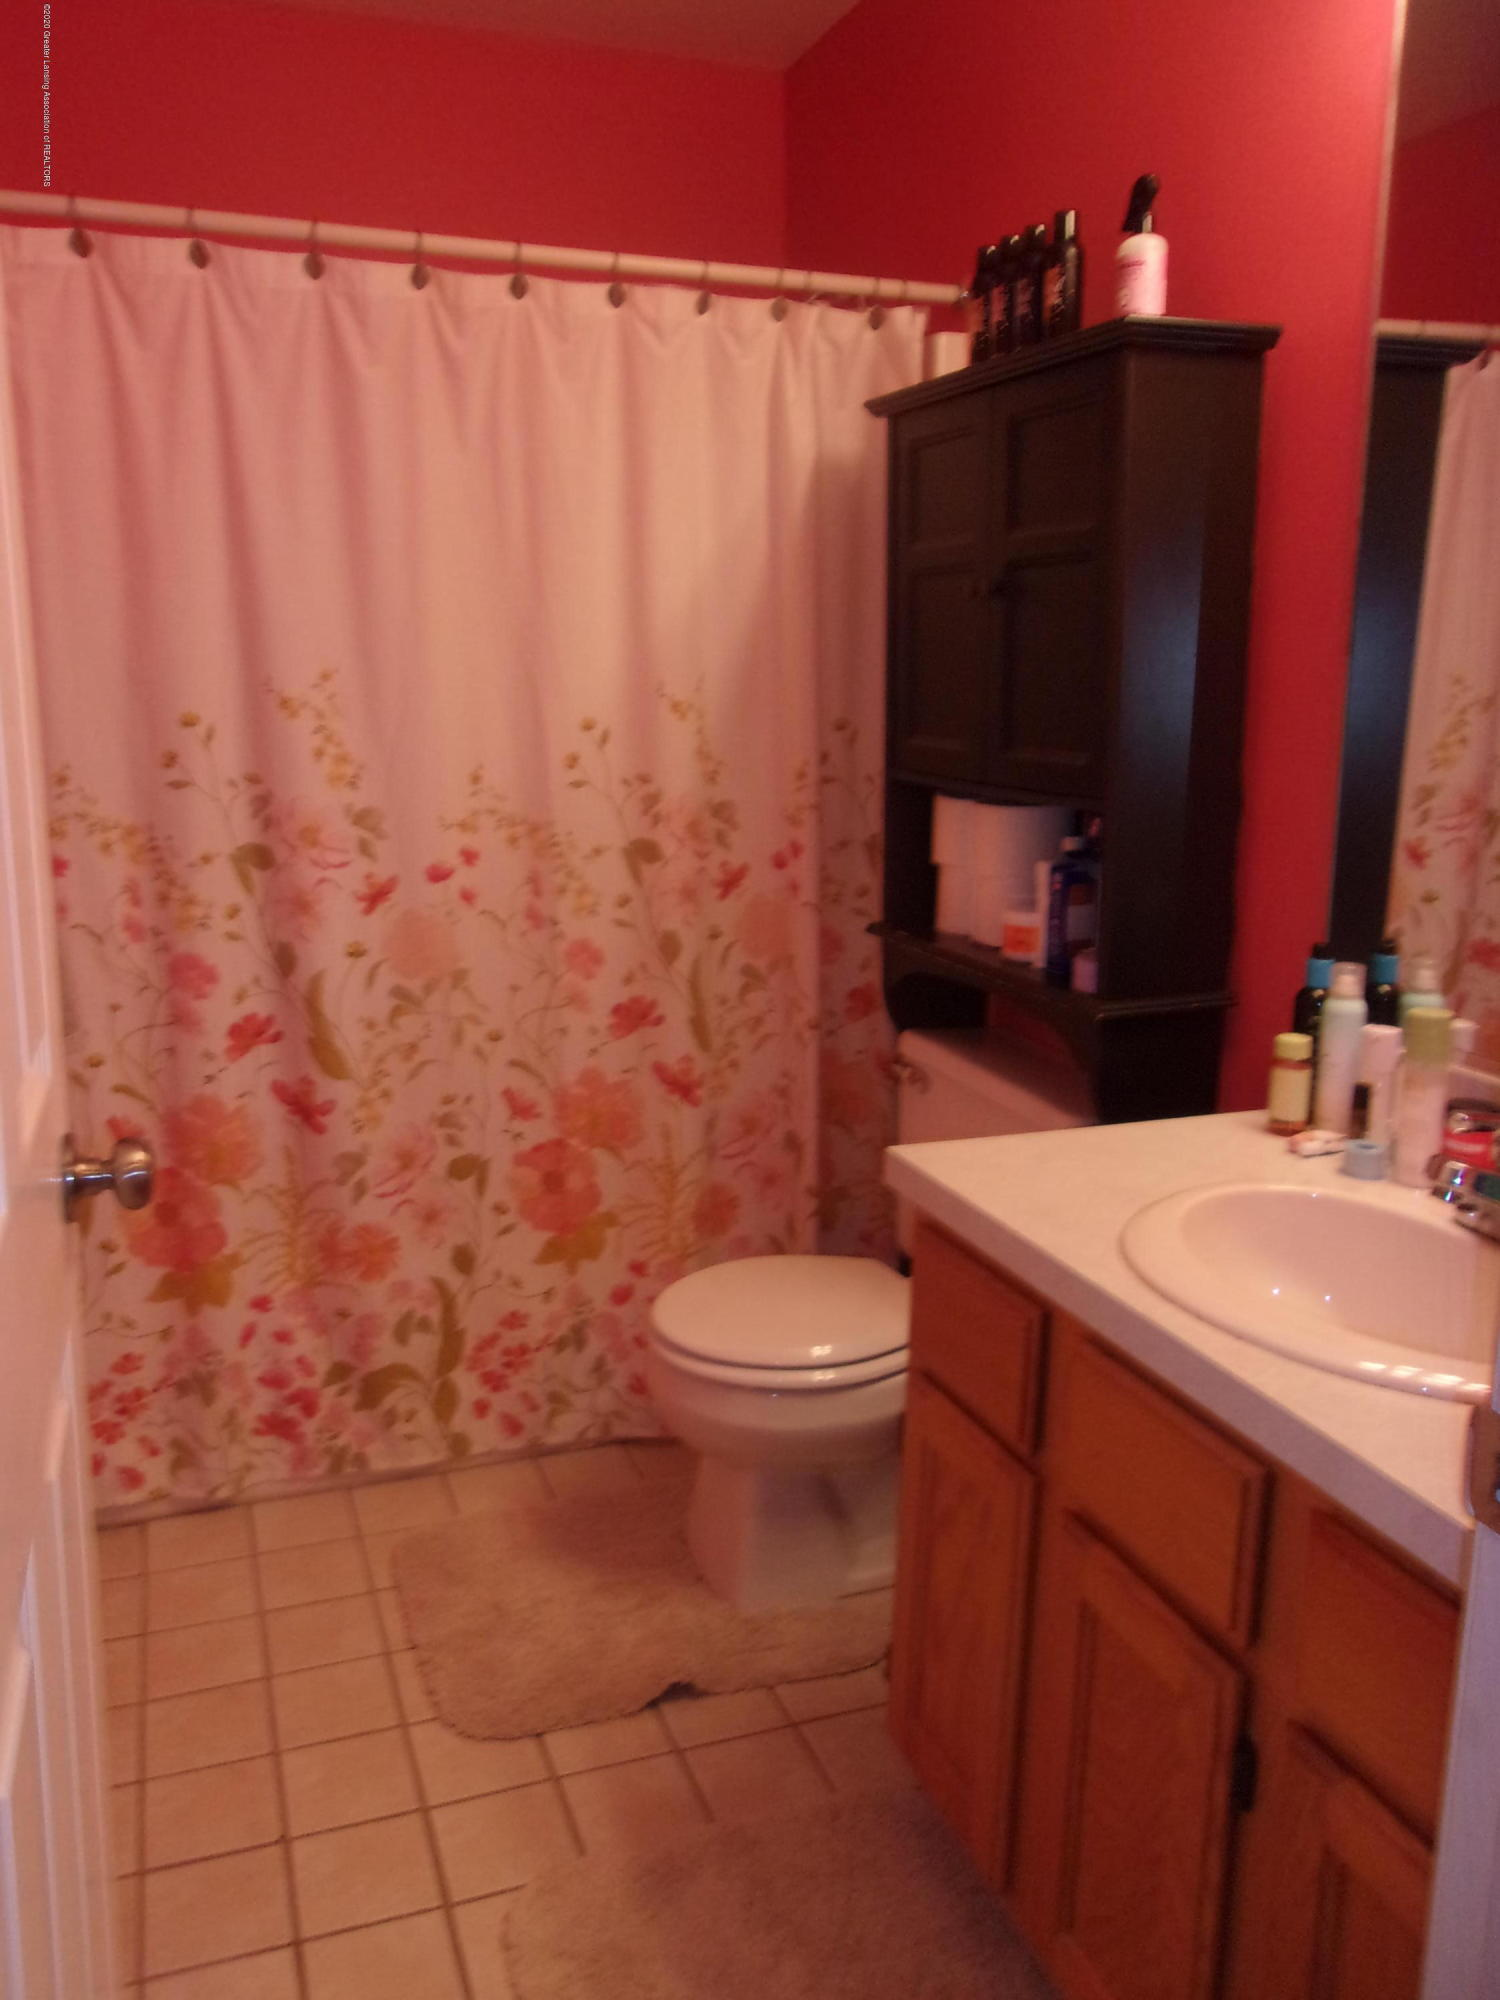 3991 Windy Heights Dr - 100_0996 - 28